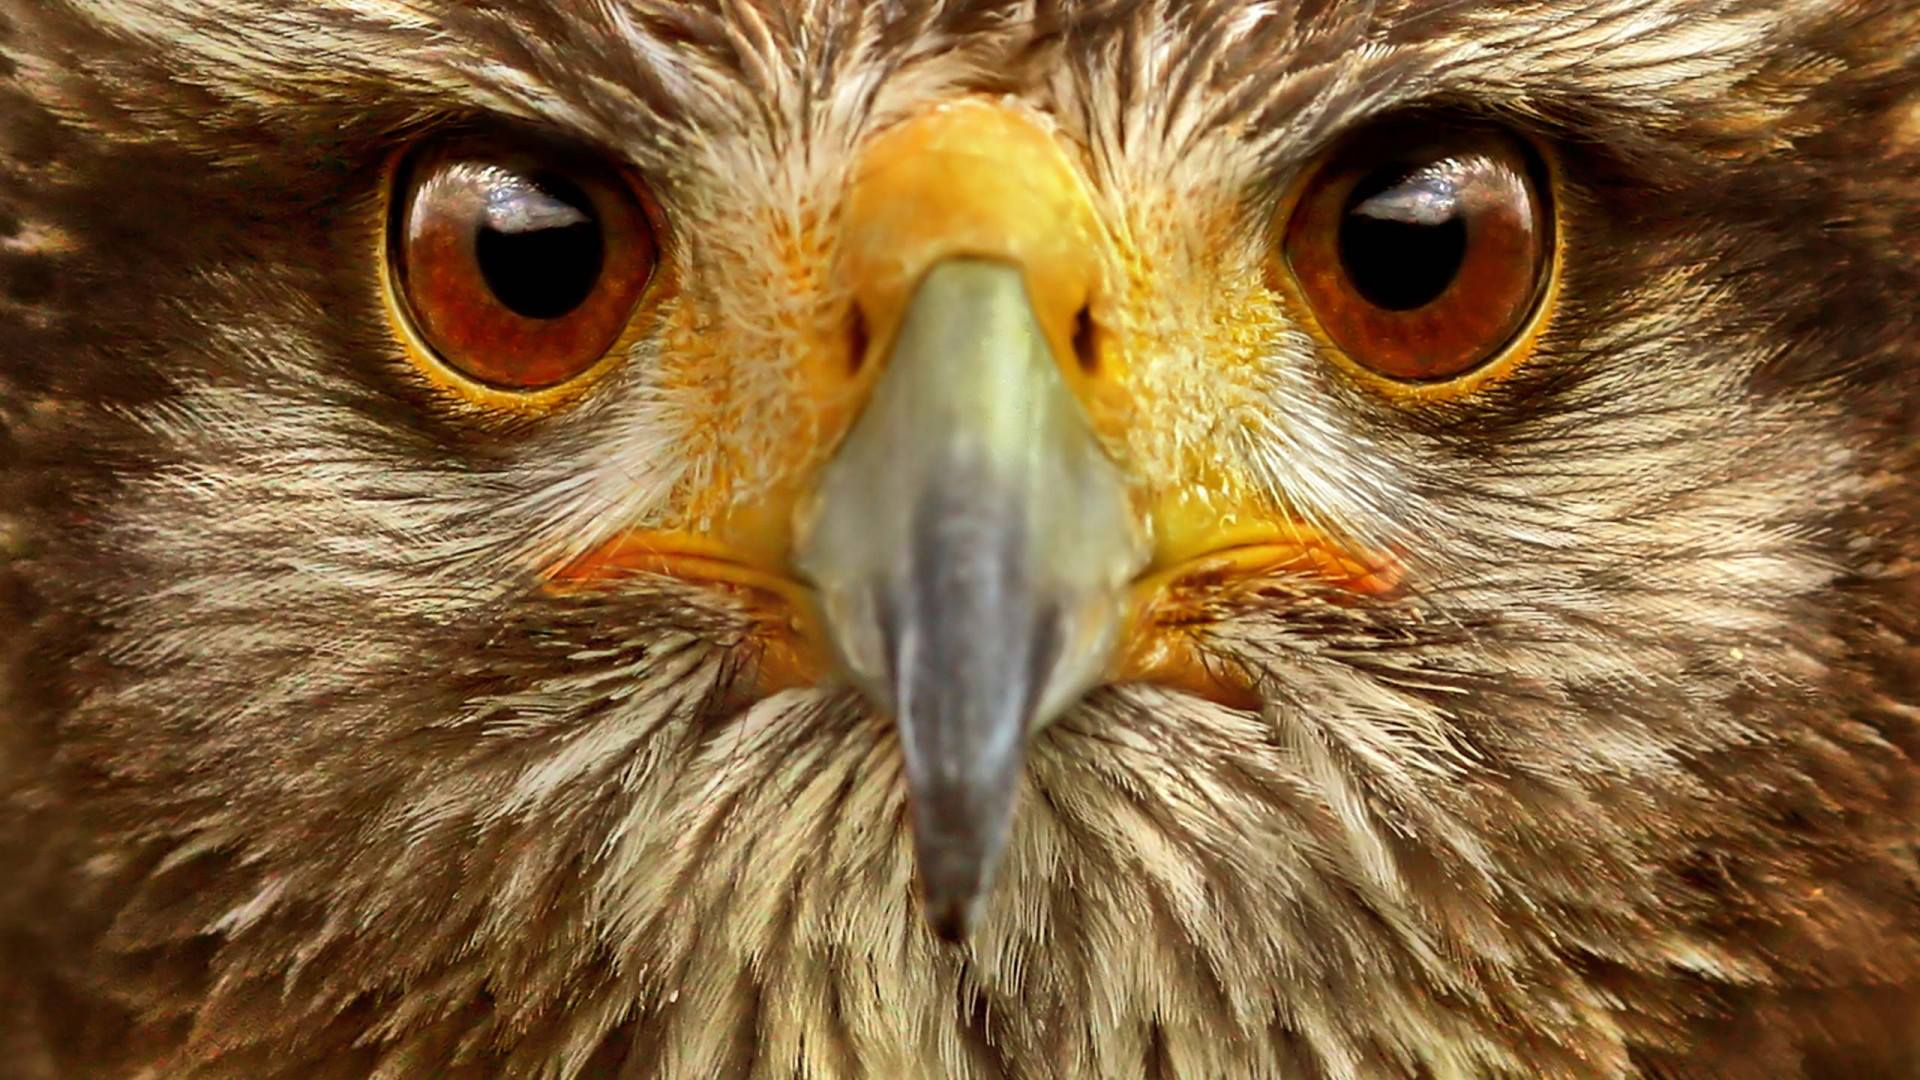 Animal eyes wallpaper 1920x1080 11393 - Animal 1920x1080 ...